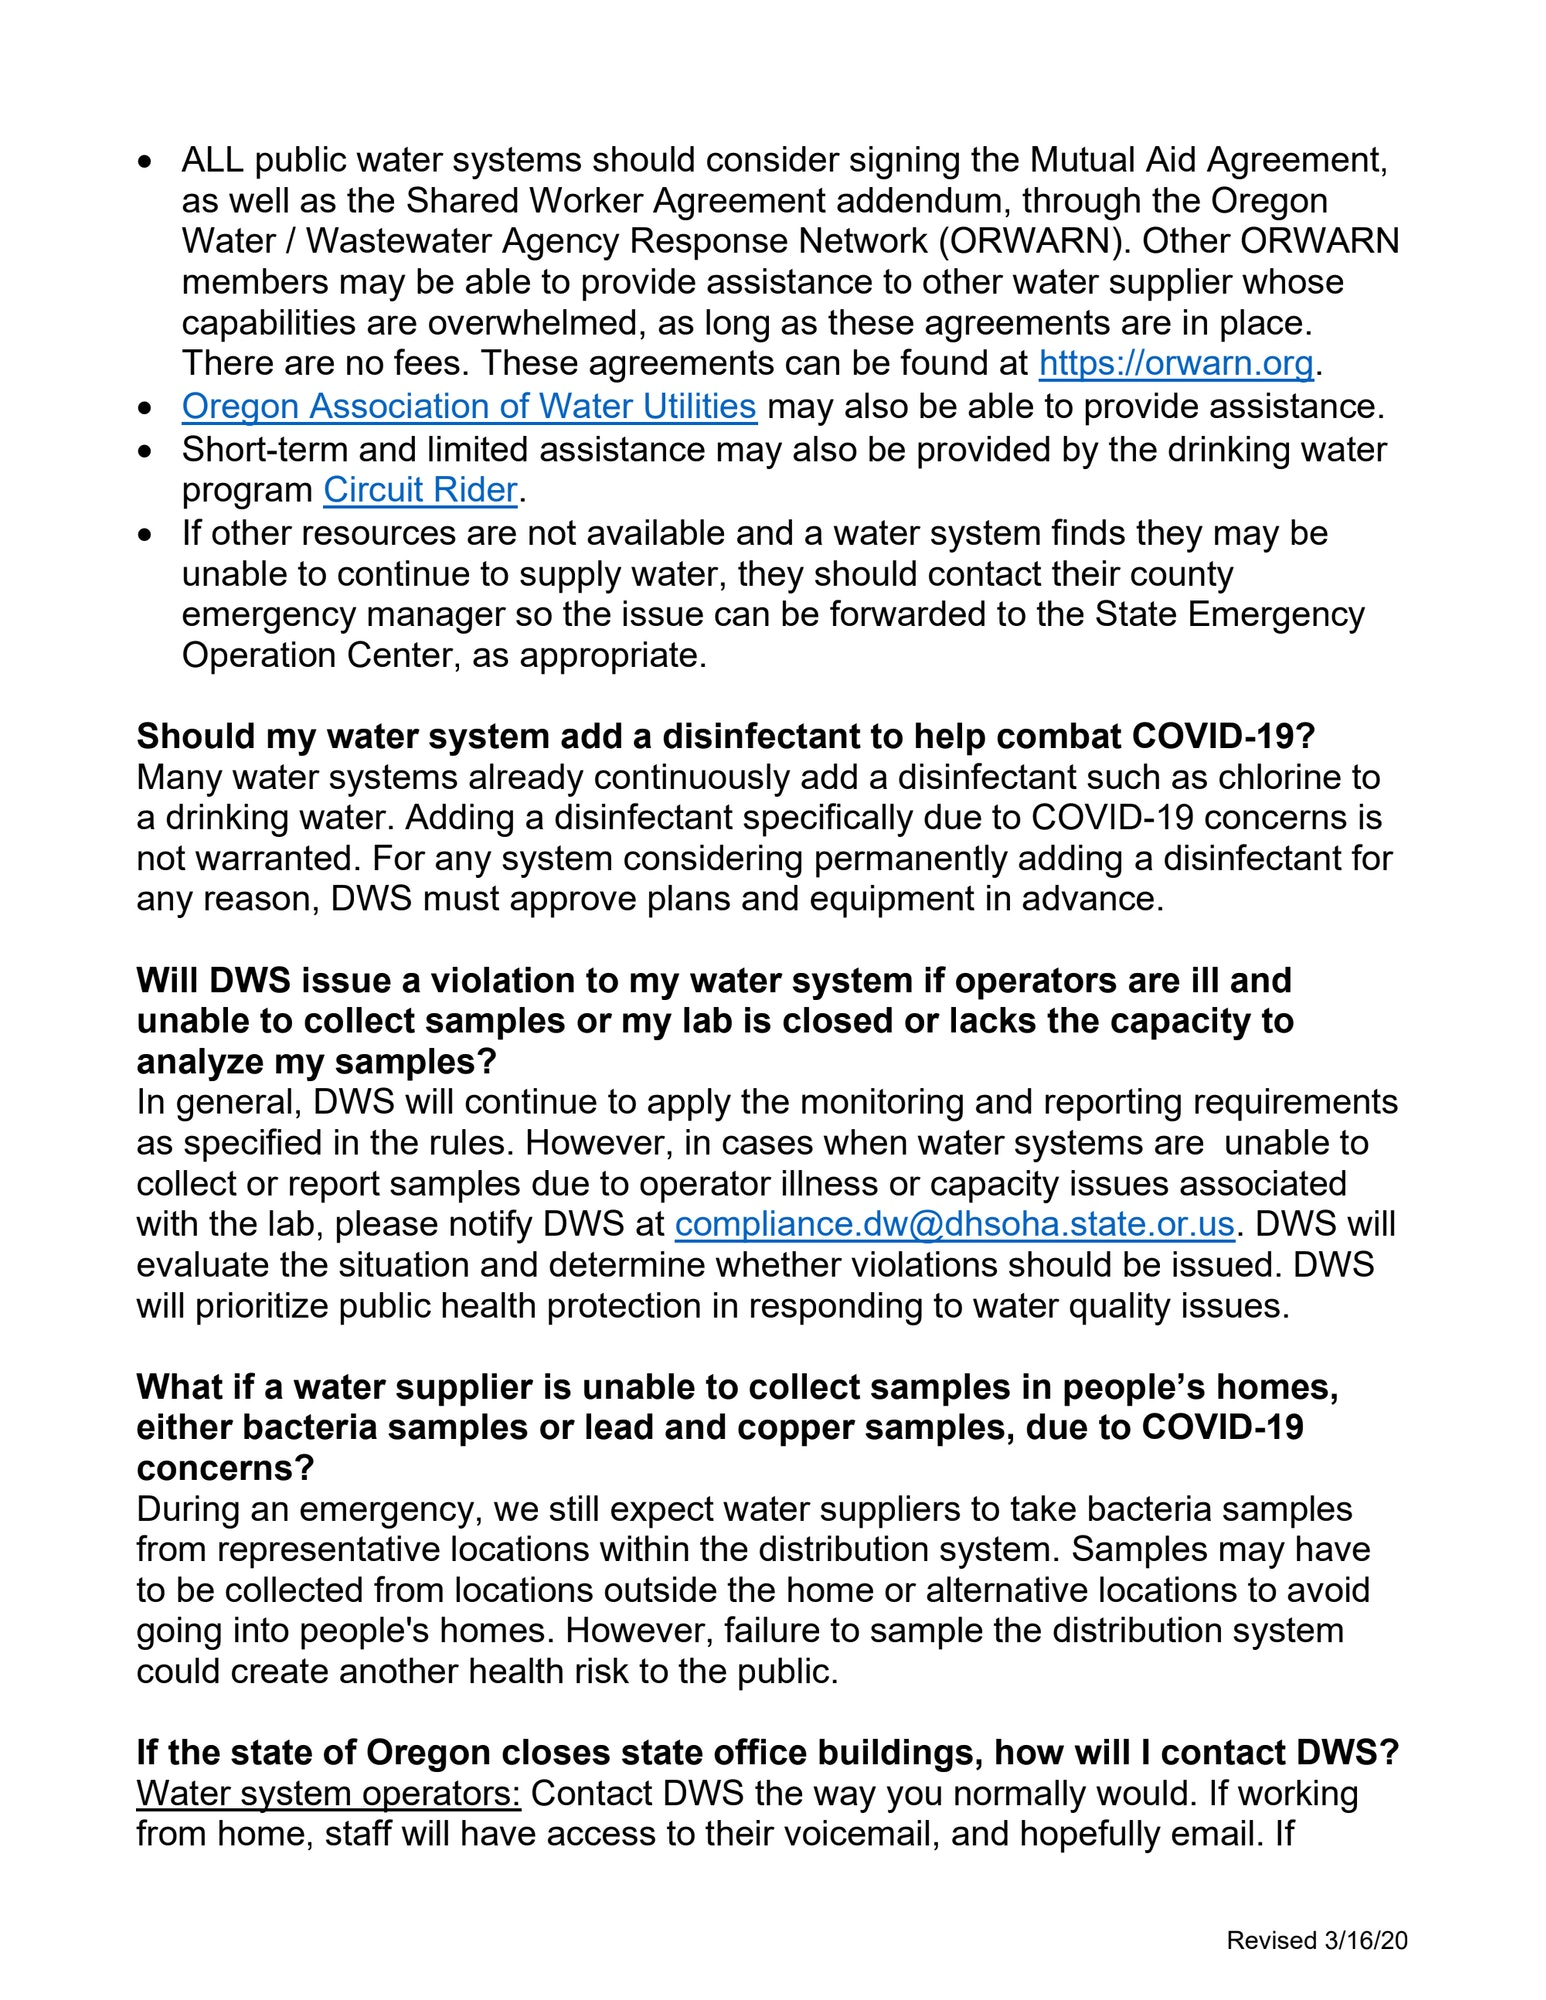 Oregon Health Authority frequently asked questions regarding public water systems and novel corona virus